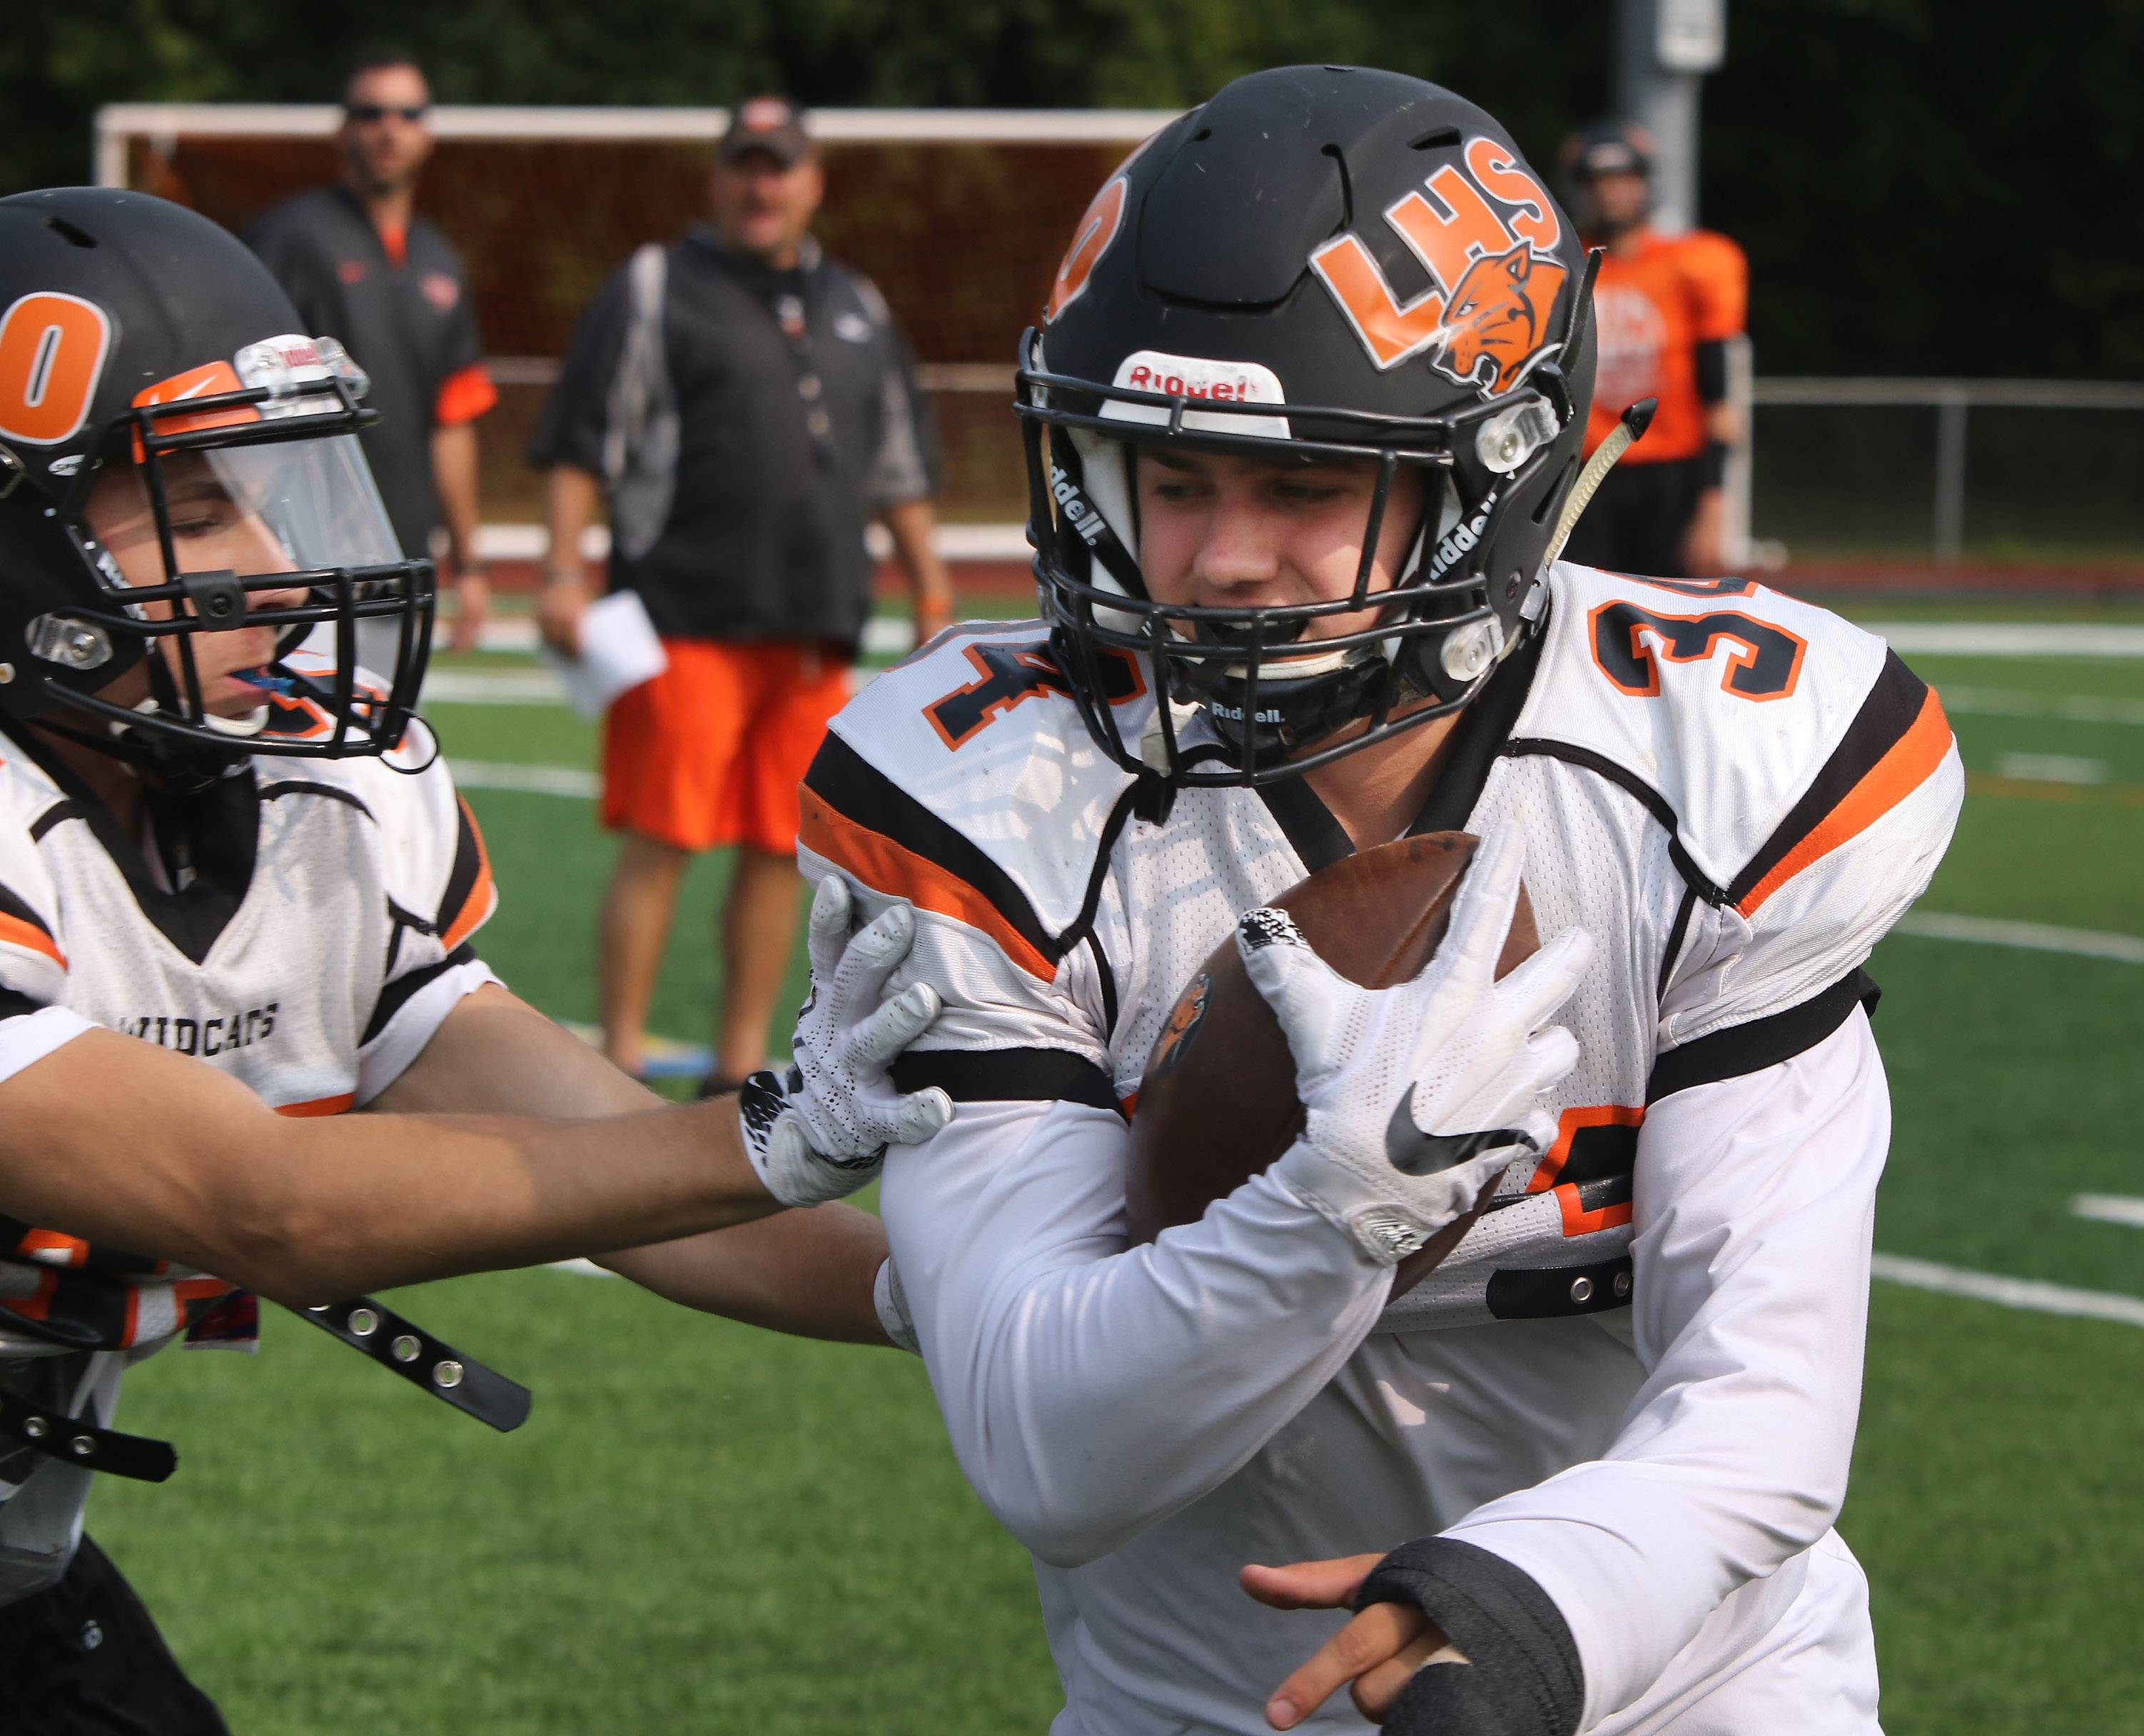 Libertyville running back Brendan Bazar is an undersized player who has put up big rushing yards the last two years.